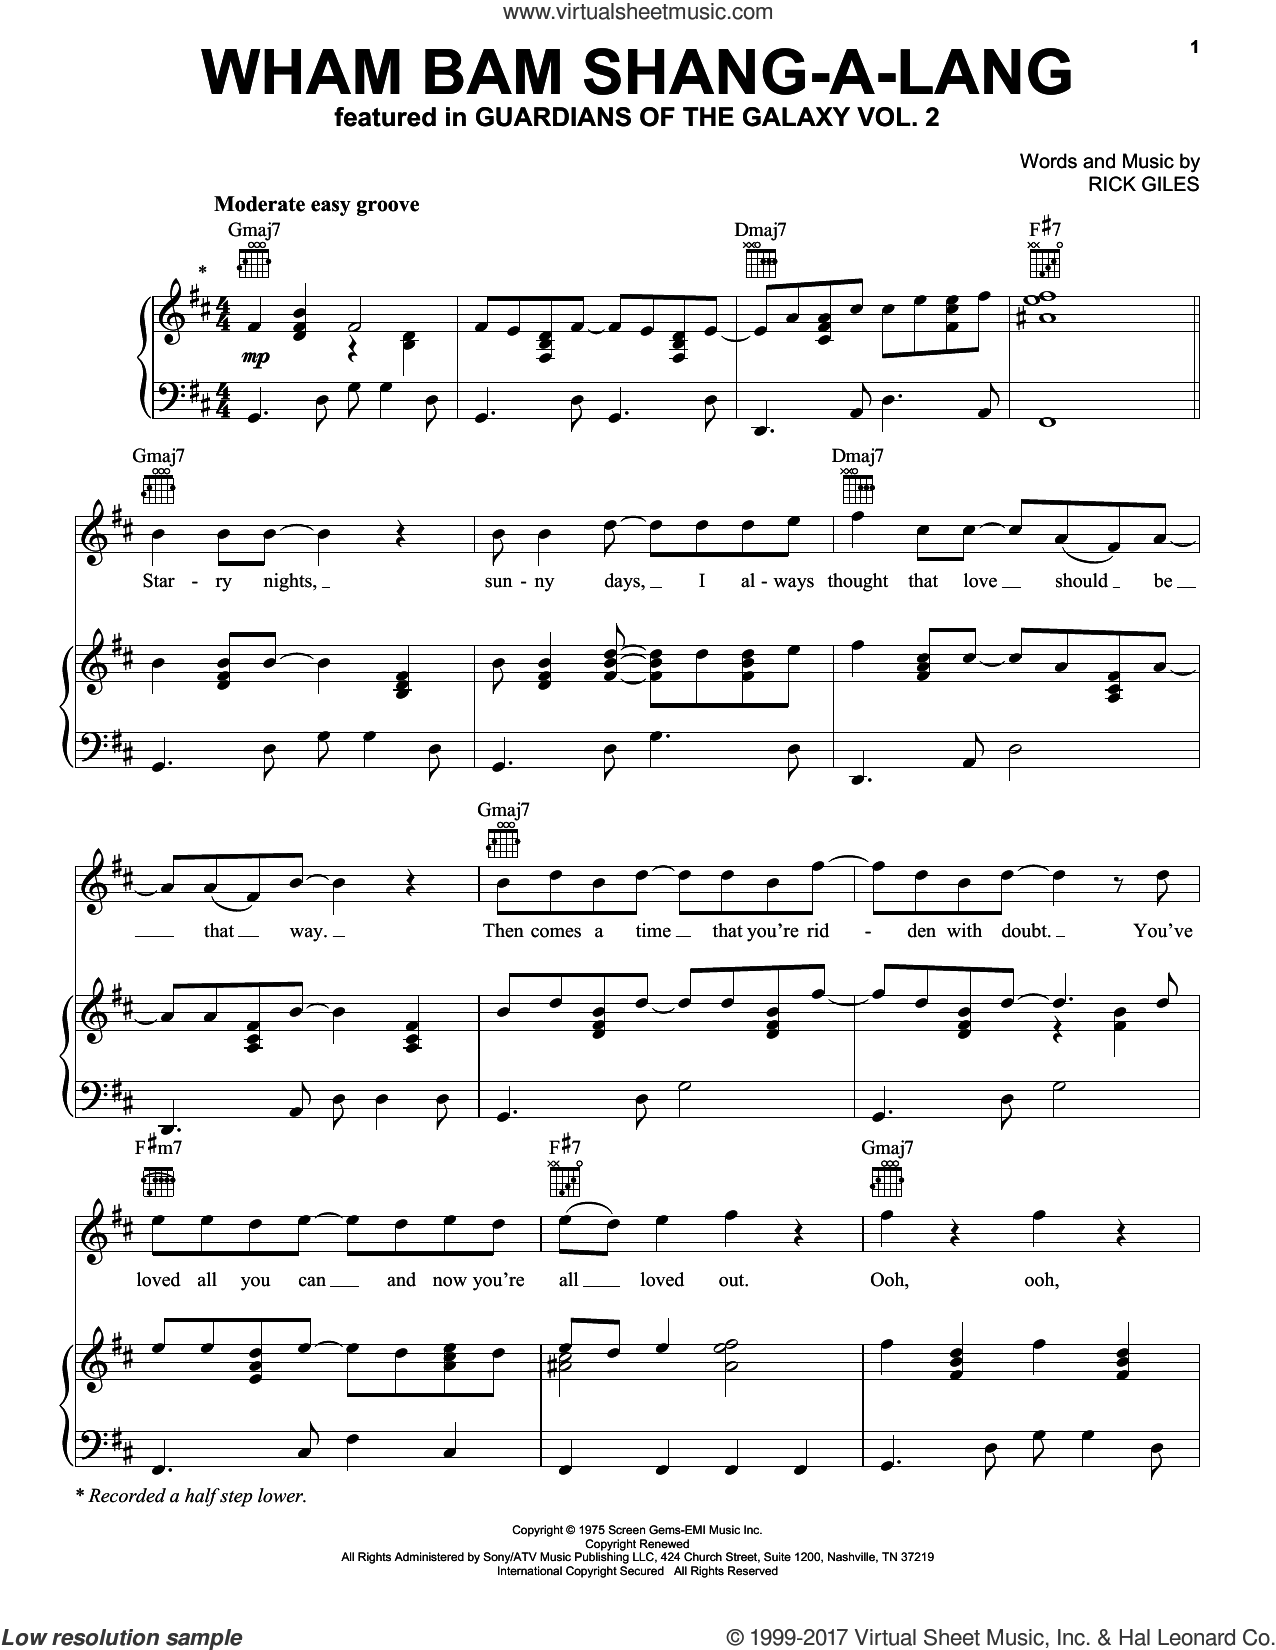 Wham Bam Shang-A-Lang sheet music for voice, piano or guitar by Rick Giles, intermediate skill level